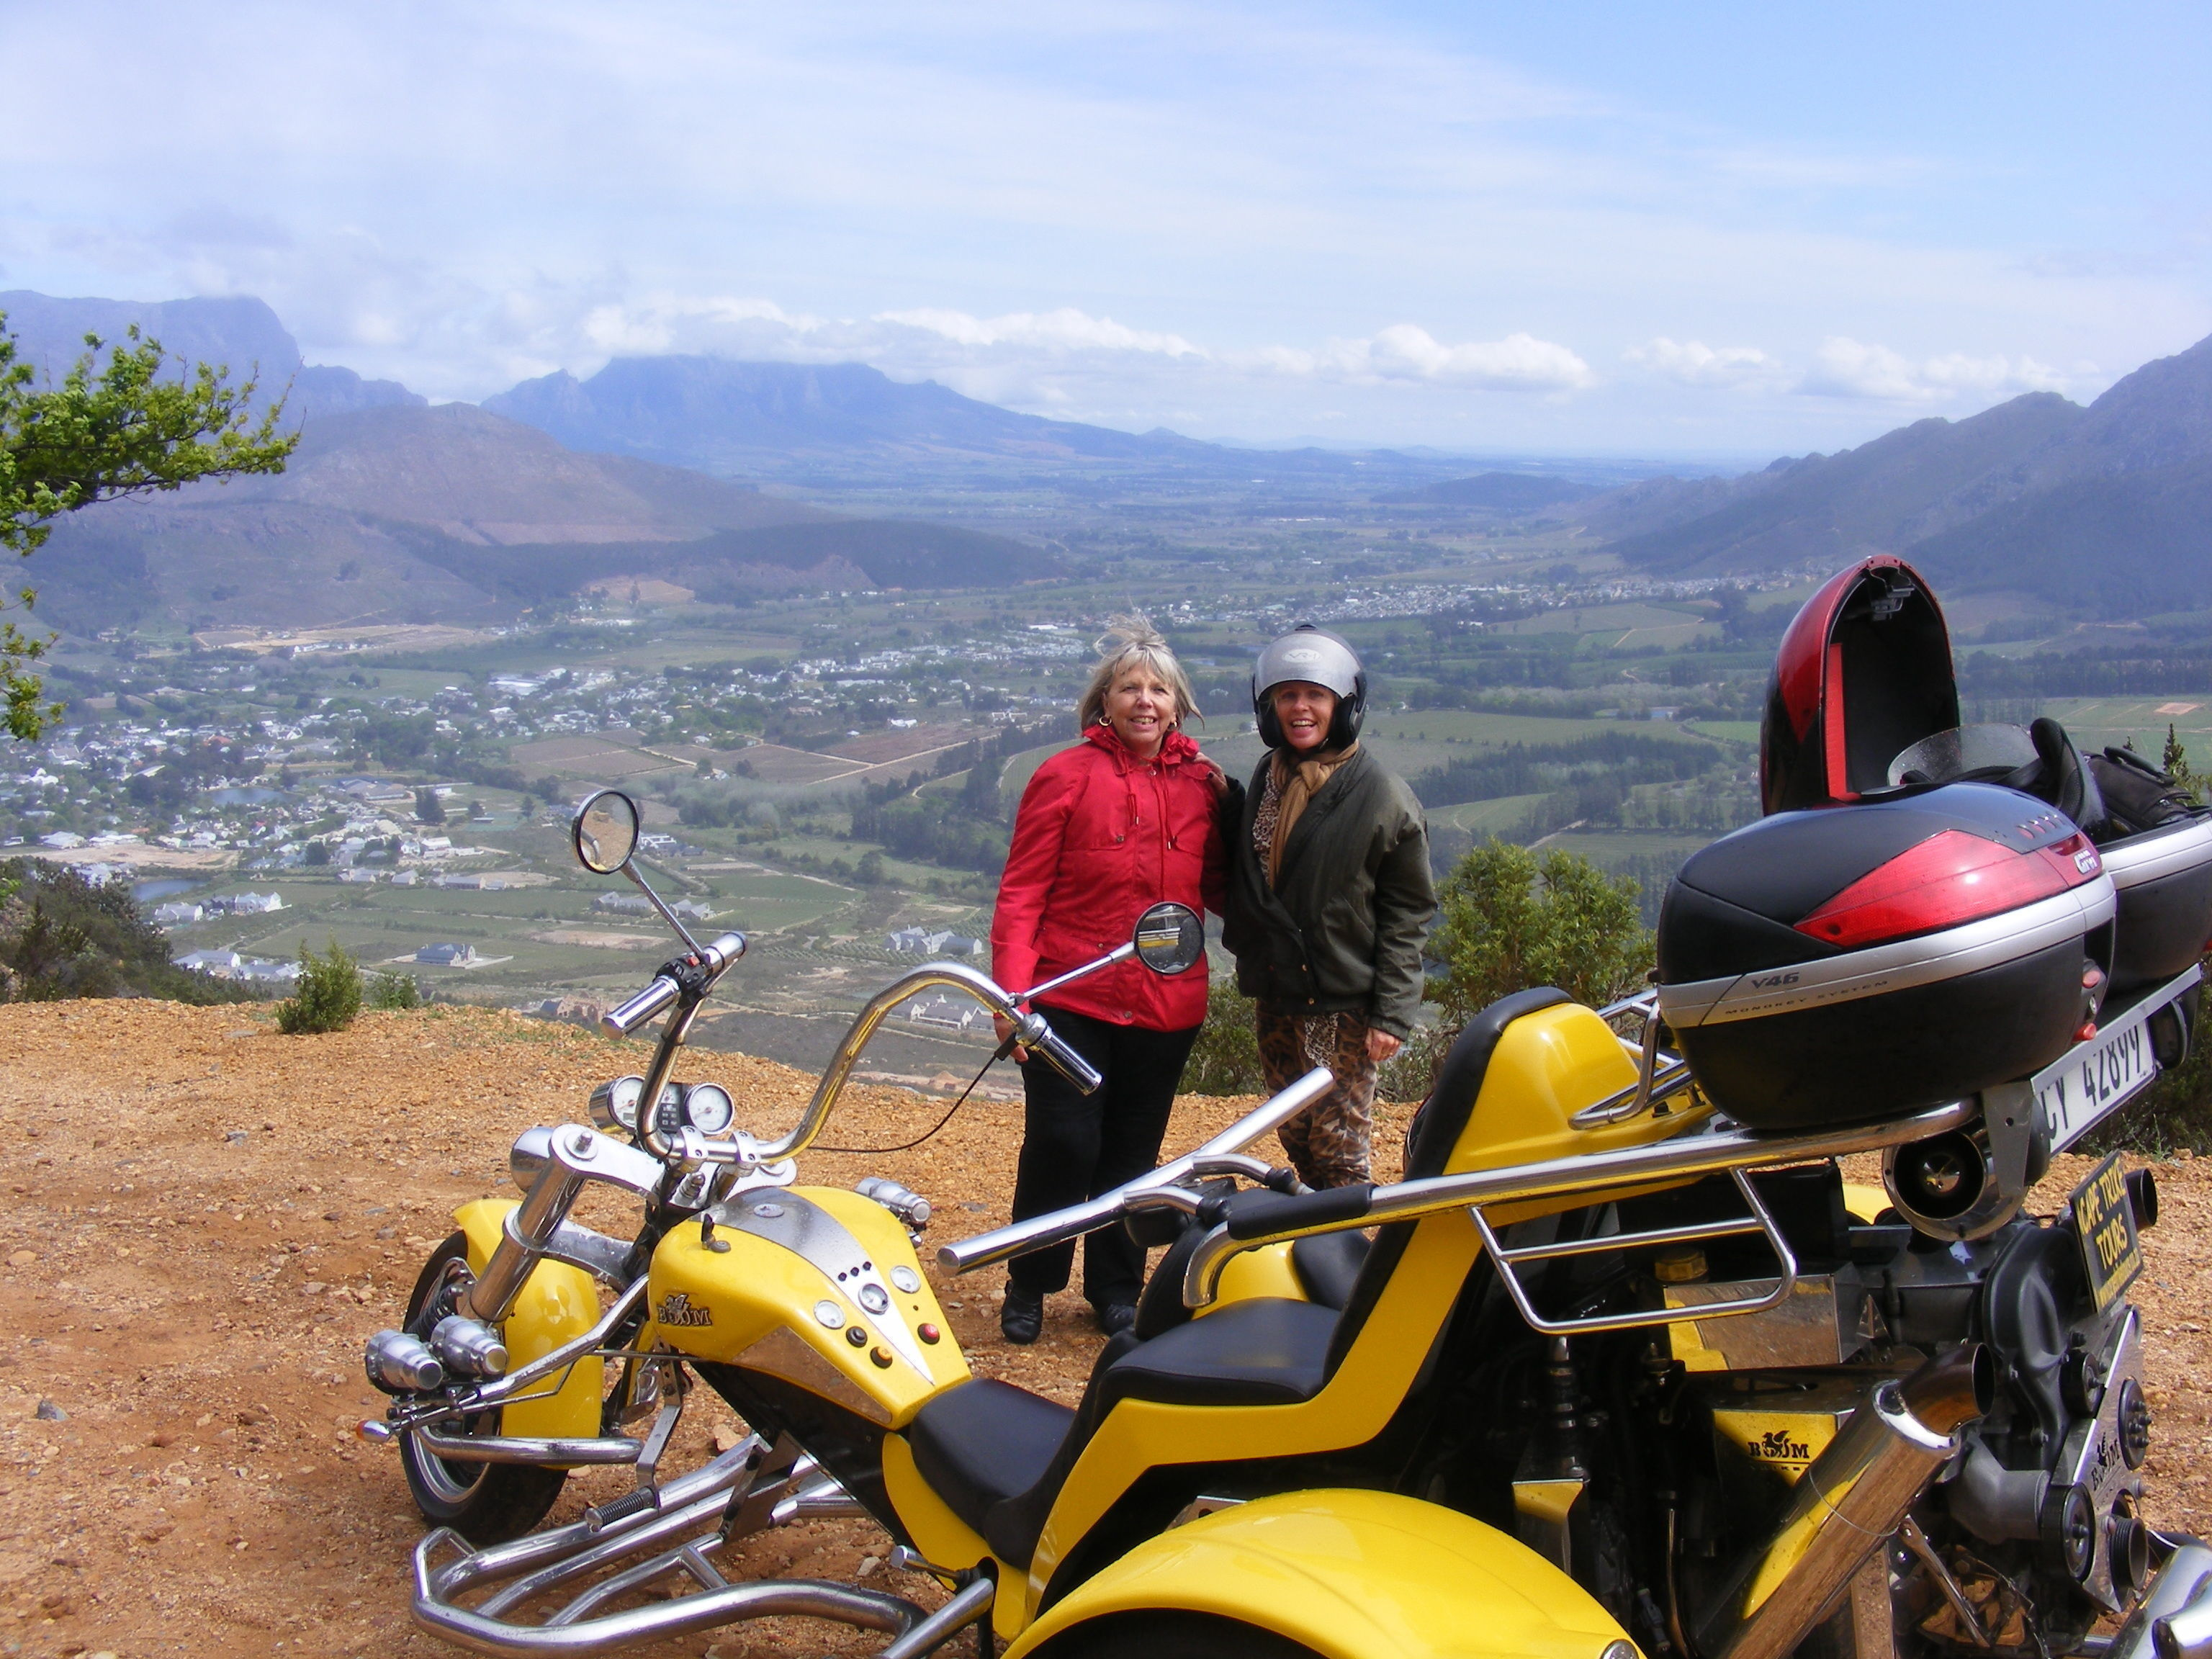 Cape Winelands (4 passes) by trike